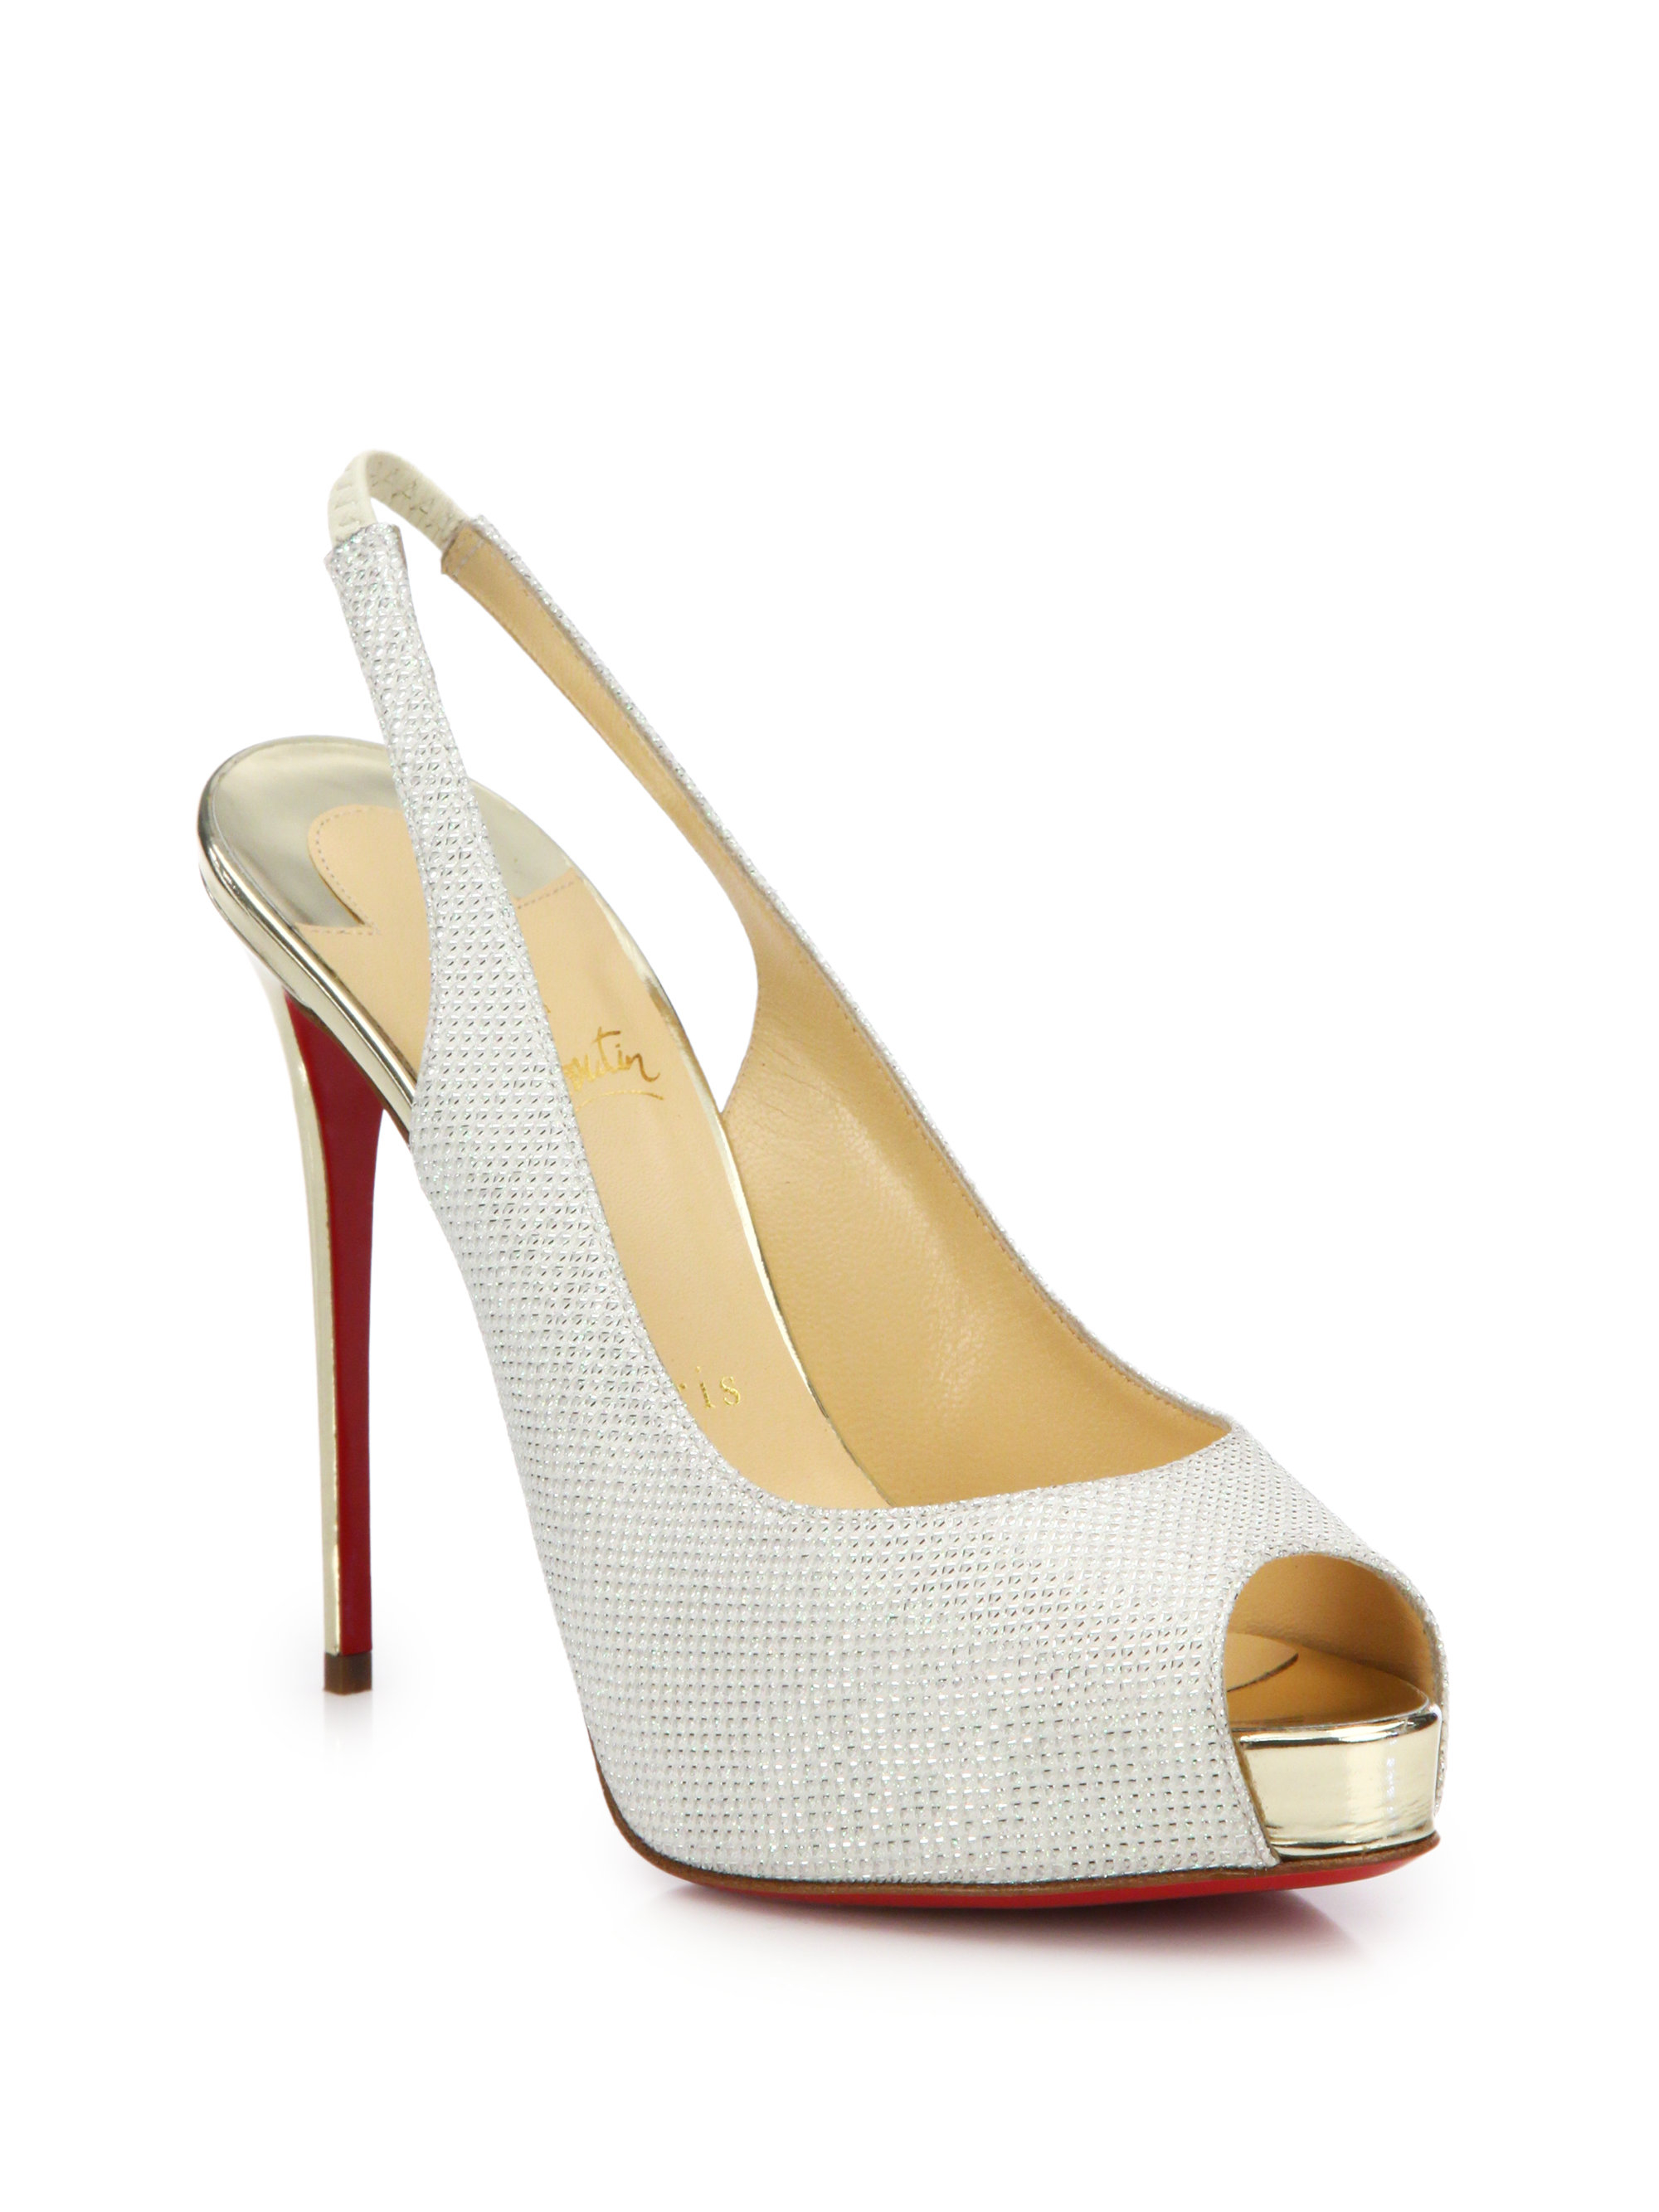 christian louboutin So Private platform slingback pumps Beige ...